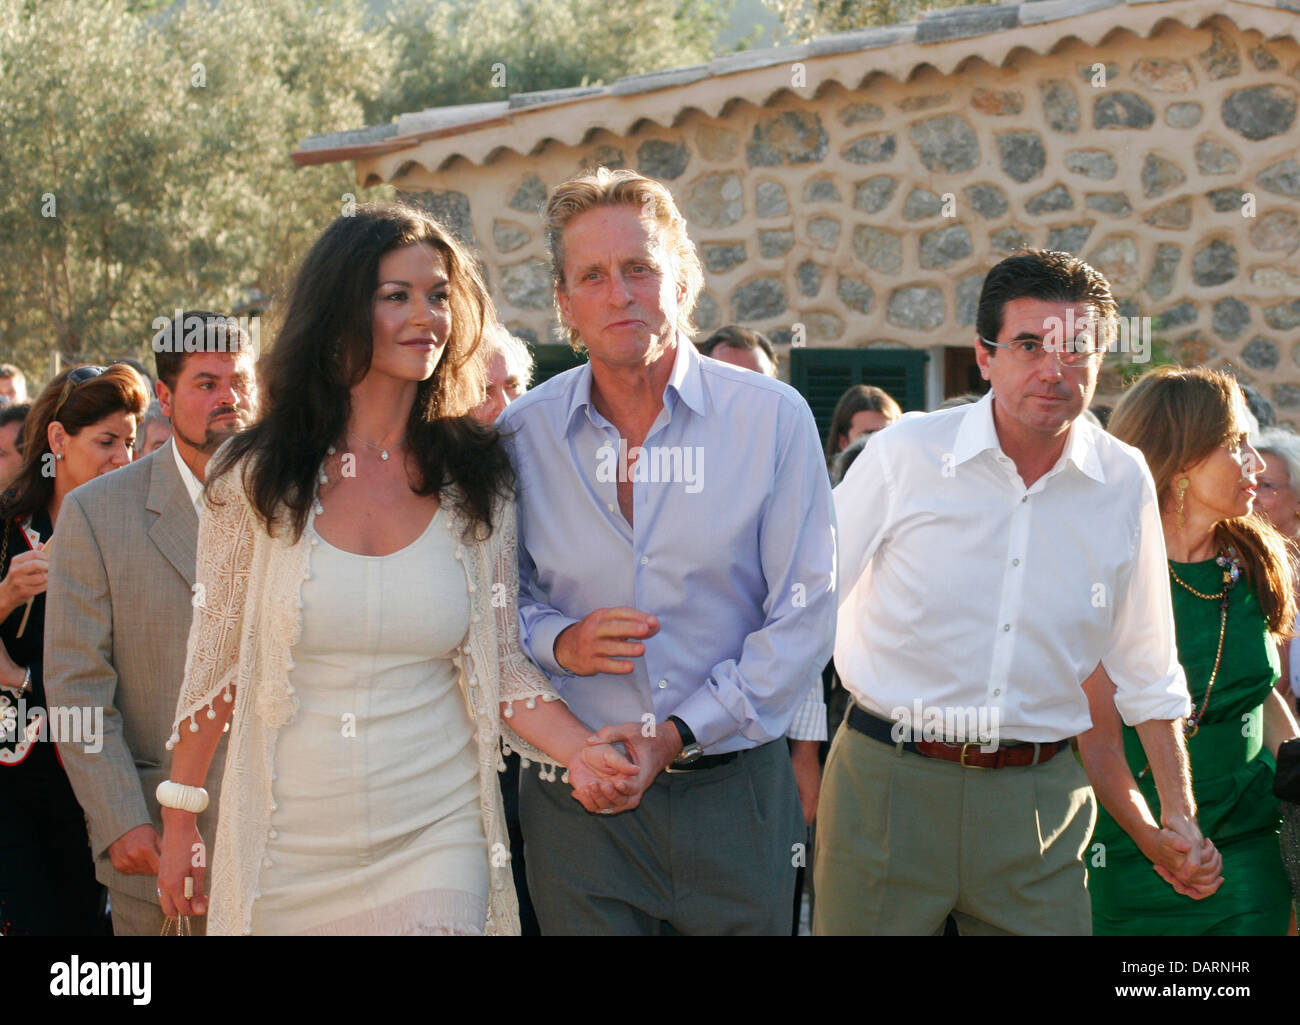 kirk douglas and michael douglas photos kirk douglas and michael douglas images alamy. Black Bedroom Furniture Sets. Home Design Ideas